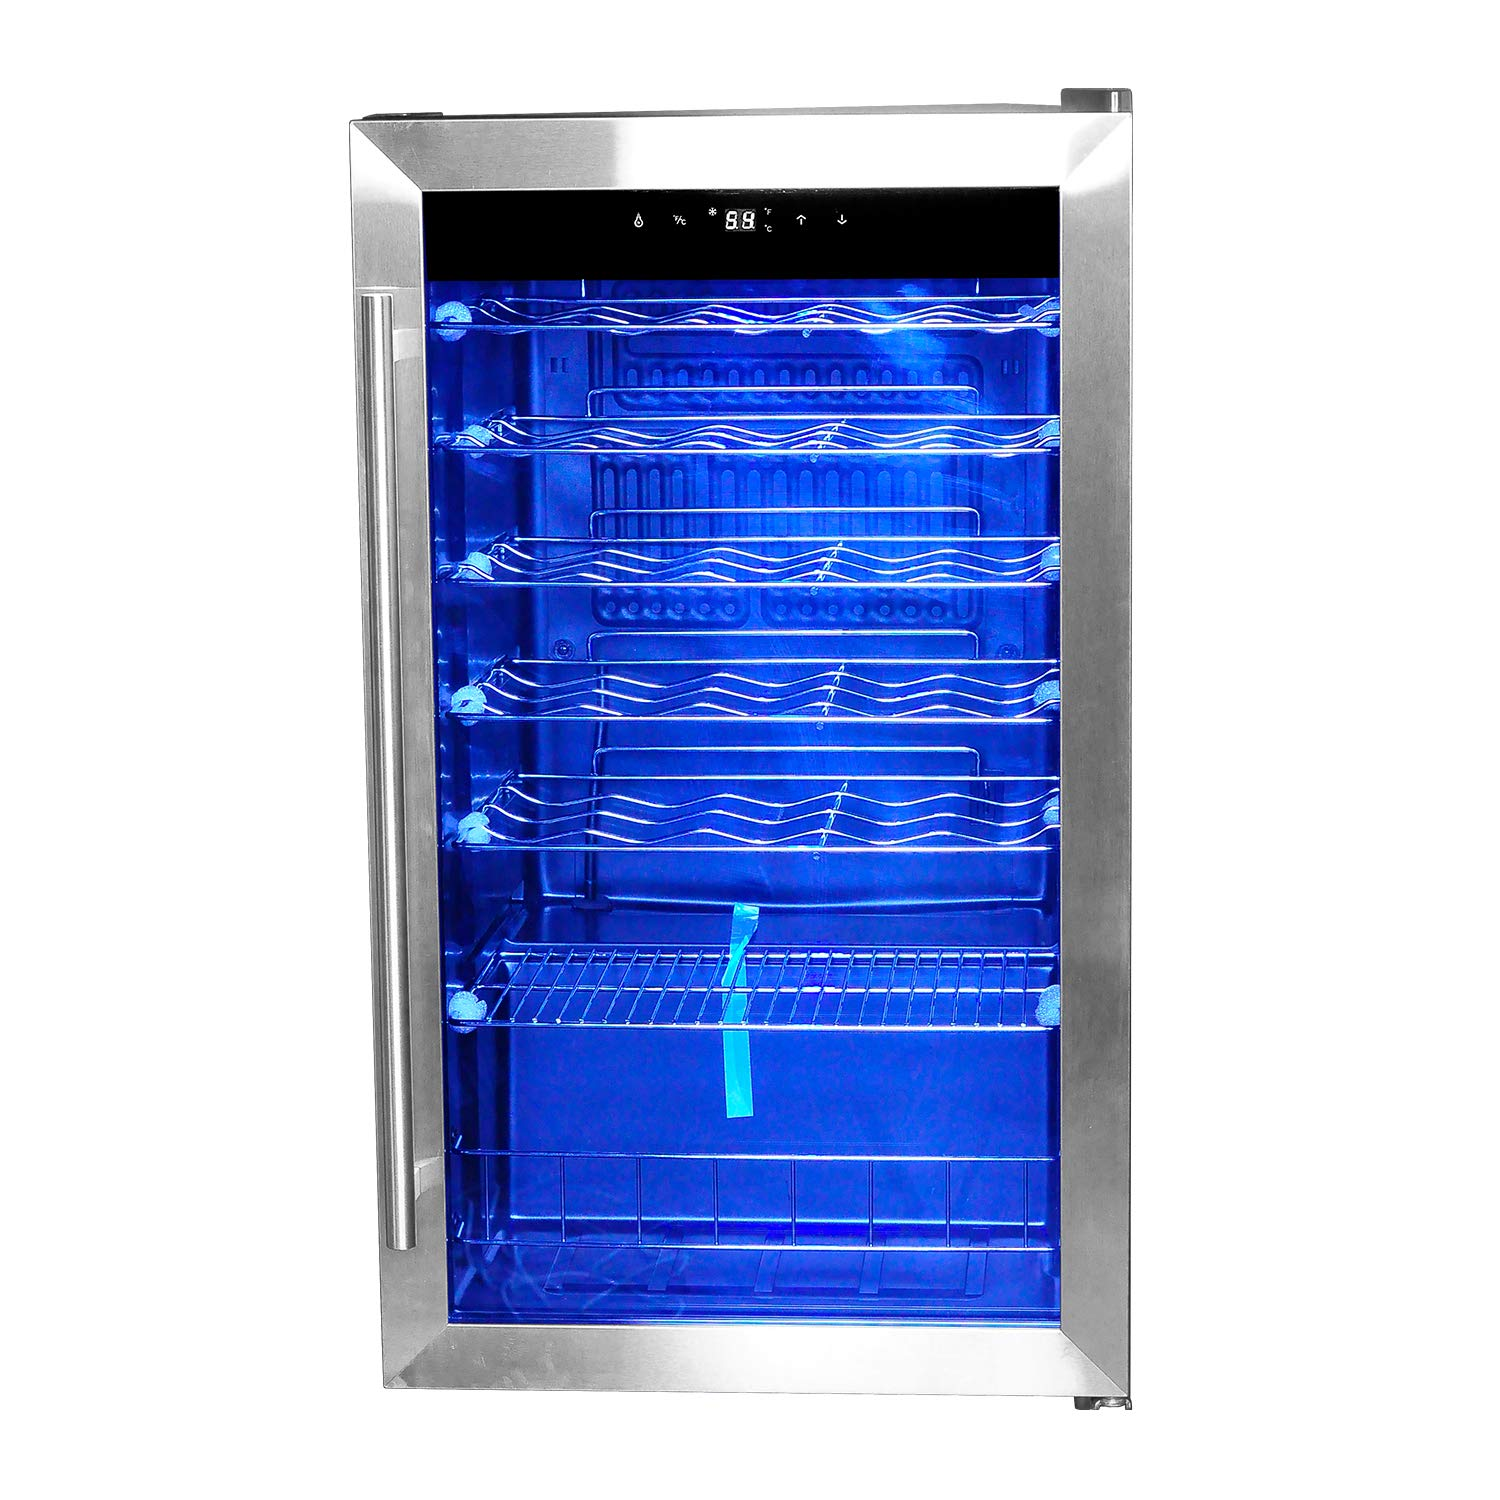 Smad 35 Bottles Compressor Wine Cooler with Handle, Stainless Steel